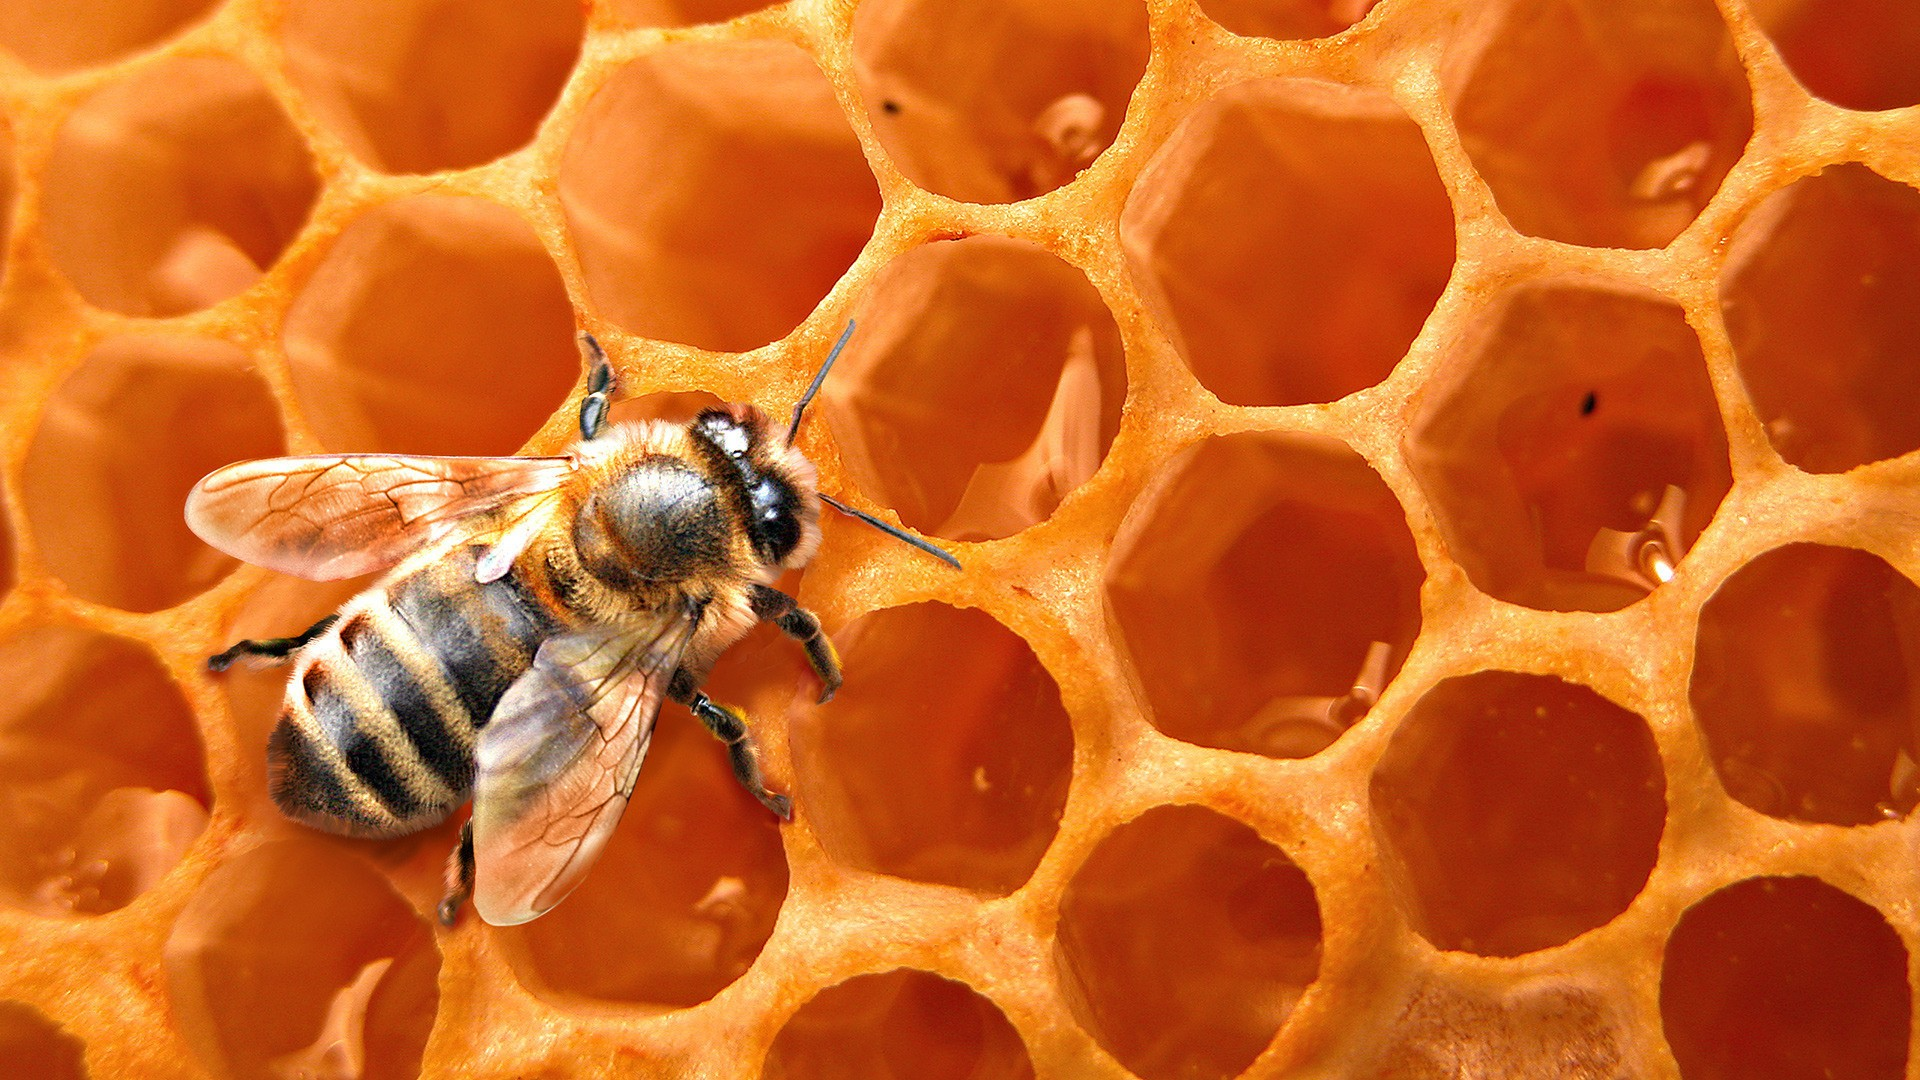 Dr Huber: Glyphosate Could Cause Bee Colony Collapse Disorder (CCD)